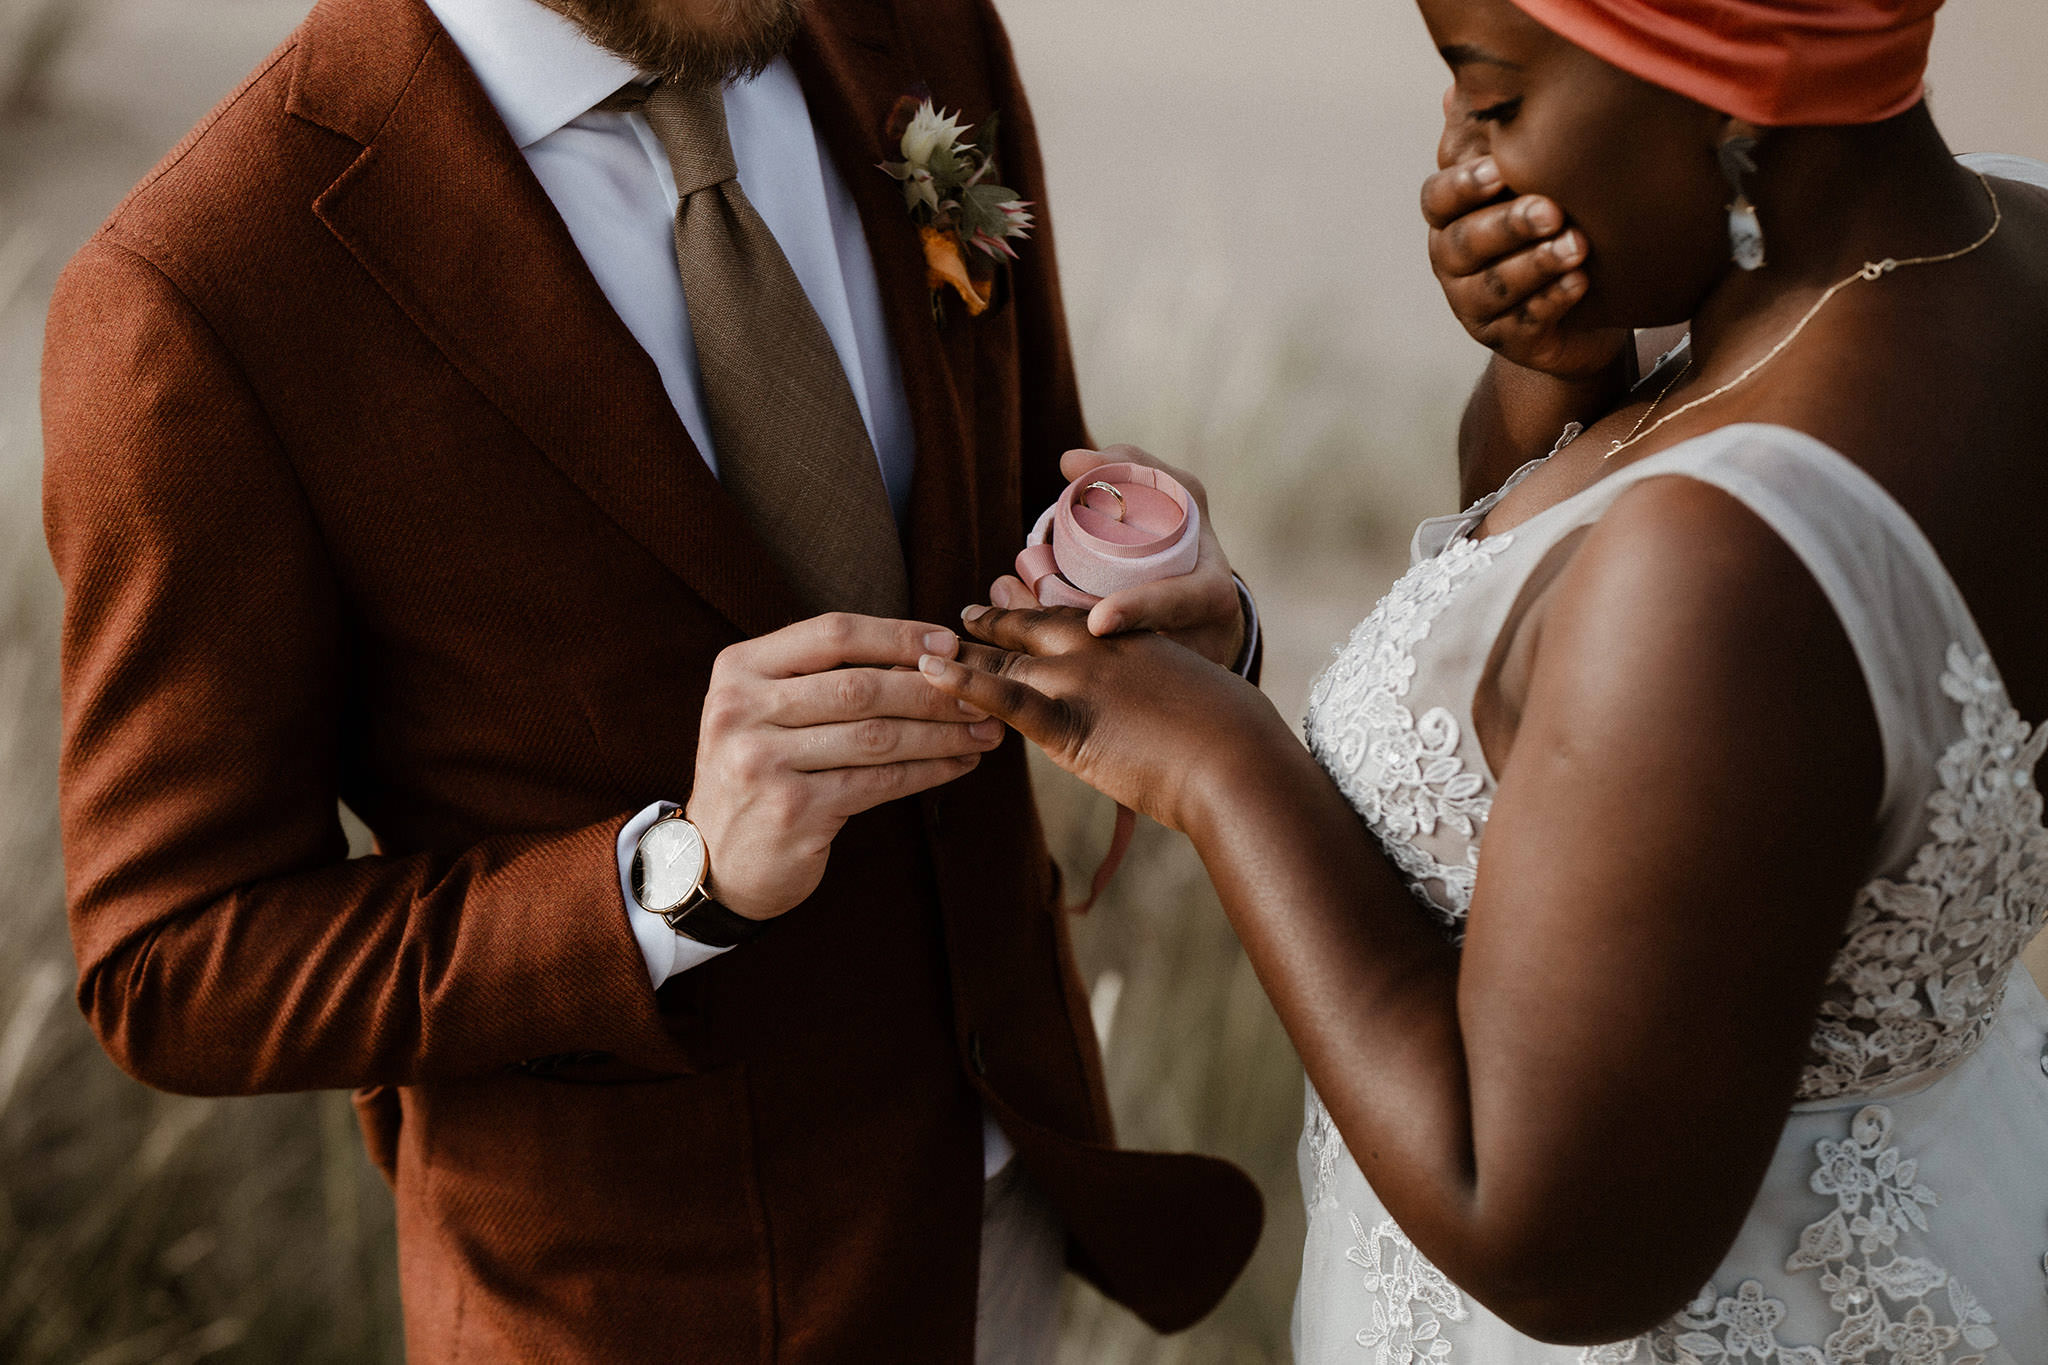 A beautiful bride has all the emotions as her groom slips the wedding ring on her finger